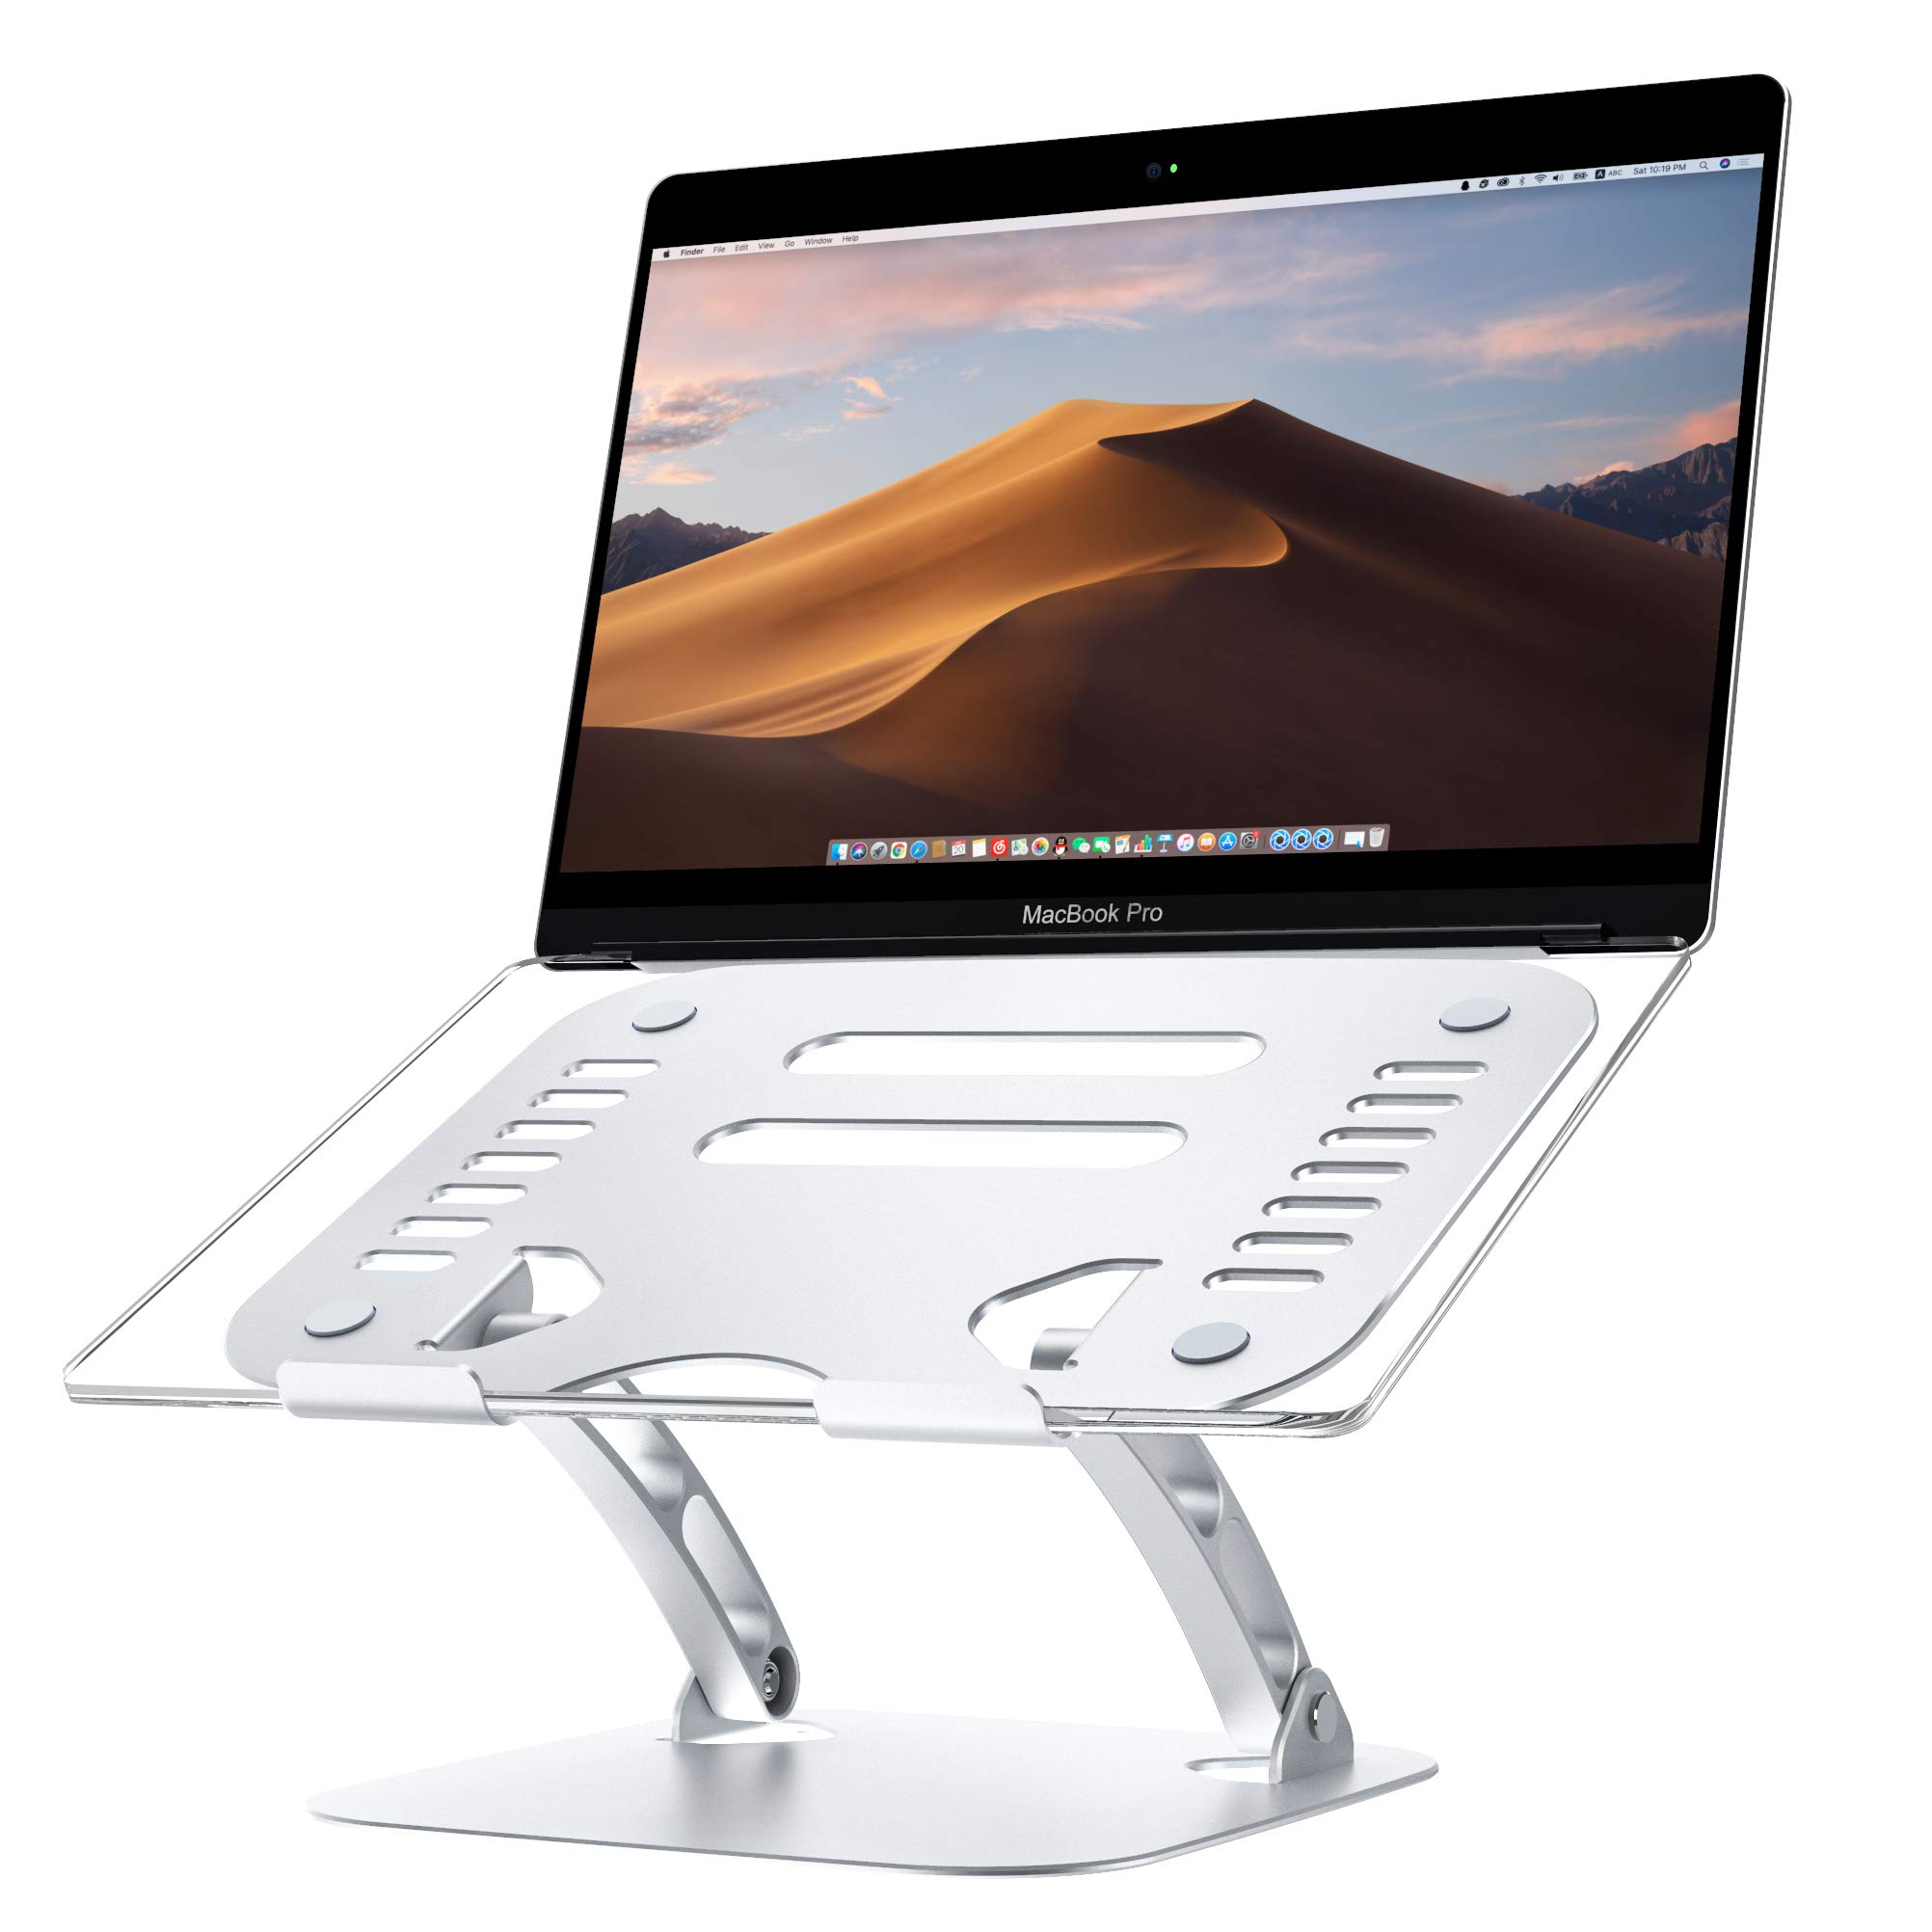 Laptop Stand Adjustable Height Ergonomic Detachable Computer Stand Aluminum Computer Riser with